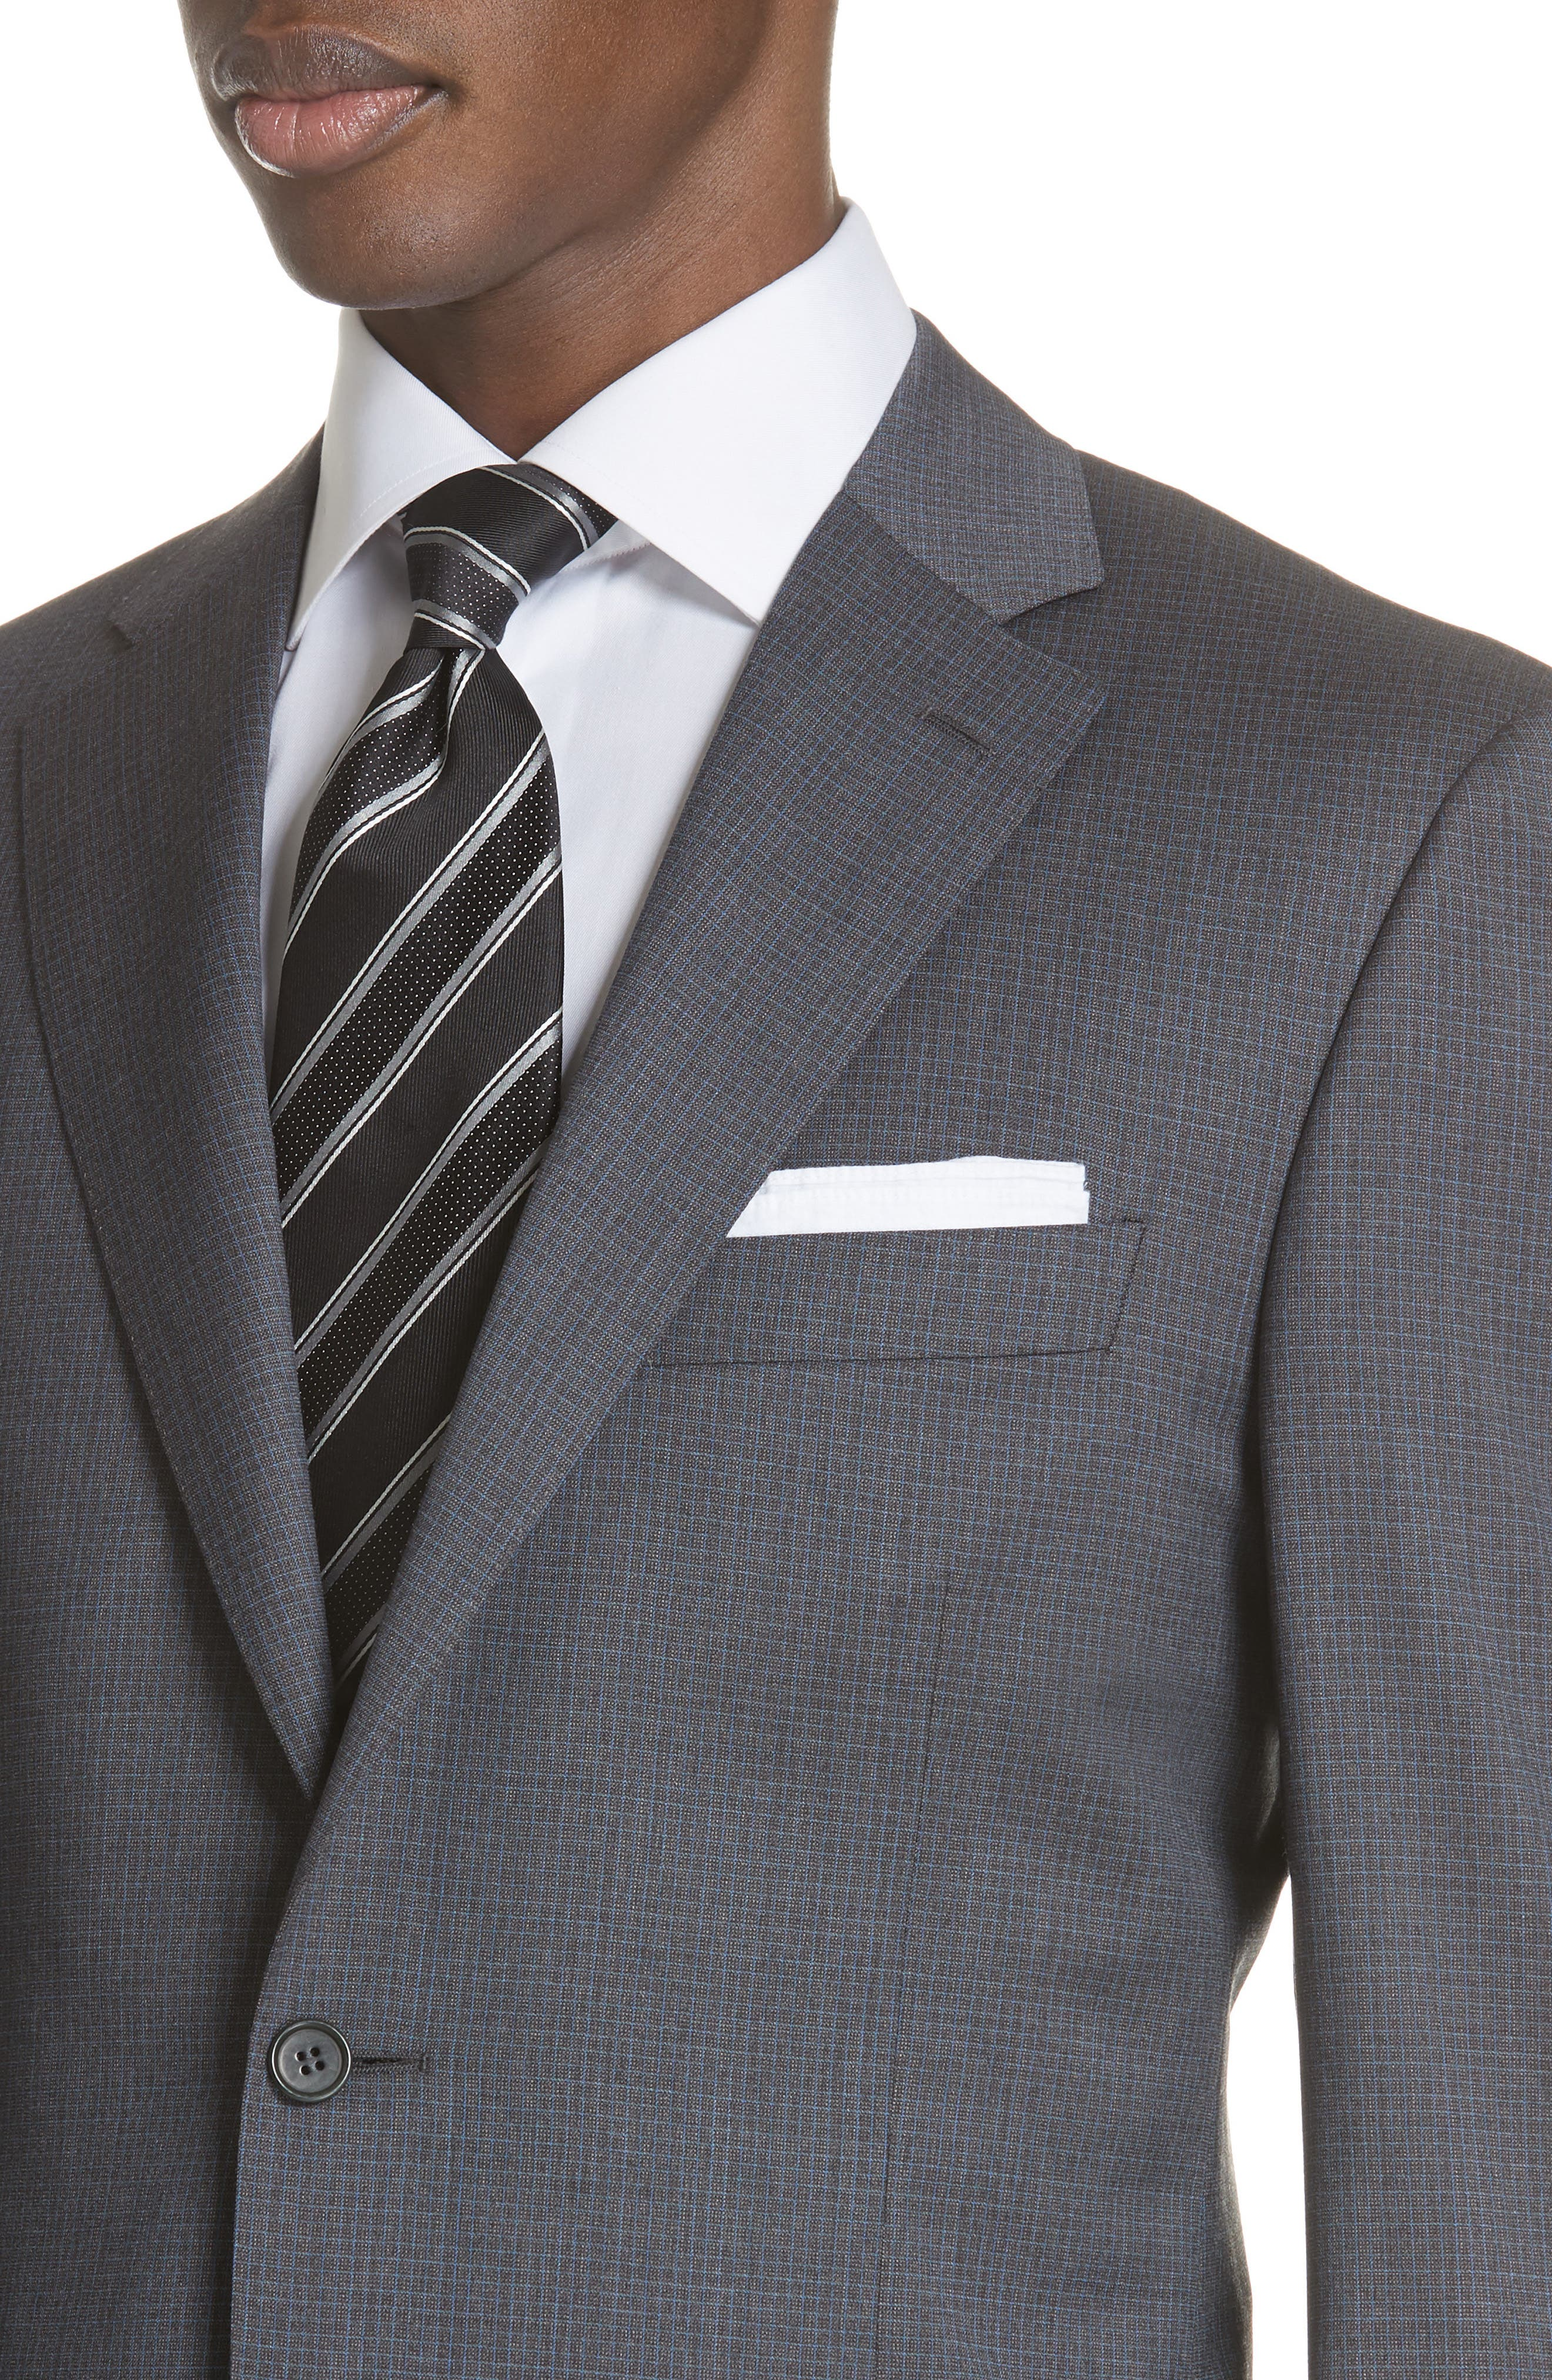 Classic Fit Check Wool Suit,                             Alternate thumbnail 4, color,                             Grey